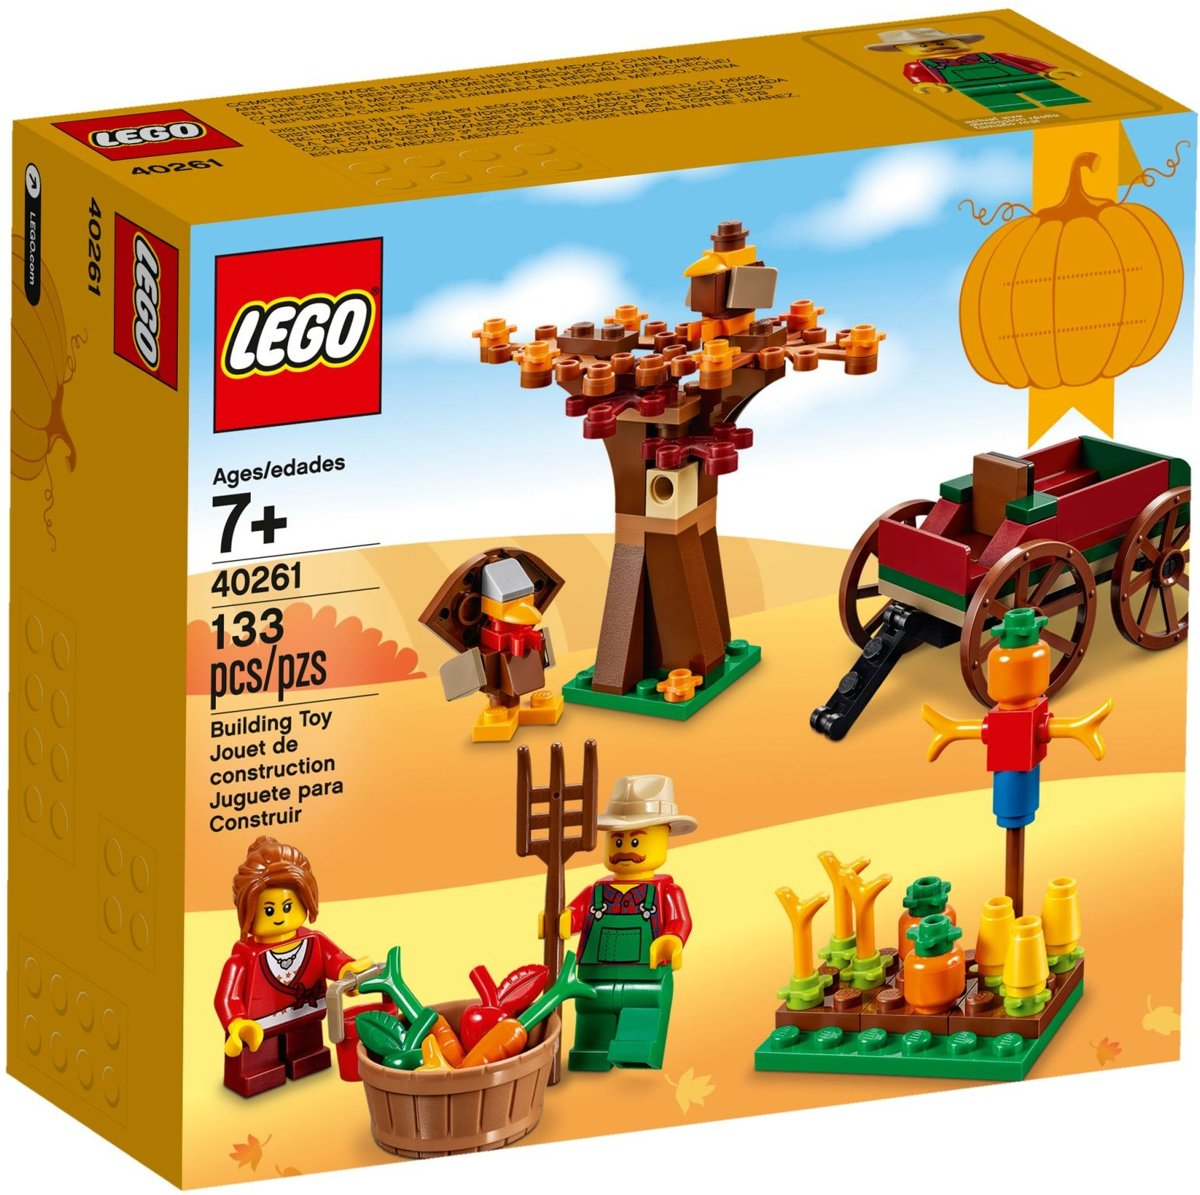 LEGO 40261 Thanksgiving Oogst